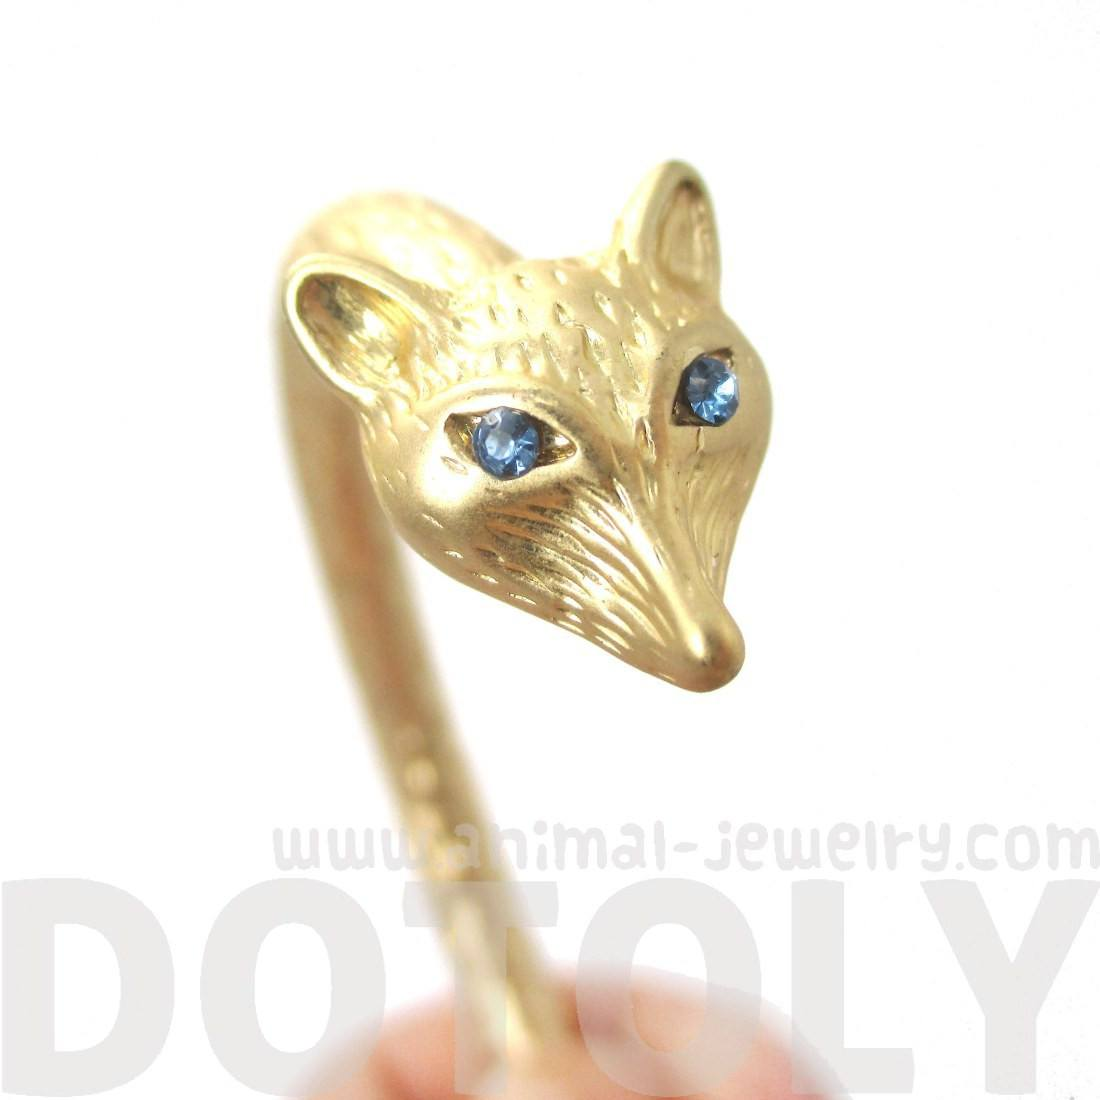 Beautiful Fox Head Shaped Animal Jewelry Bangle Bracelet Cuff in Gold